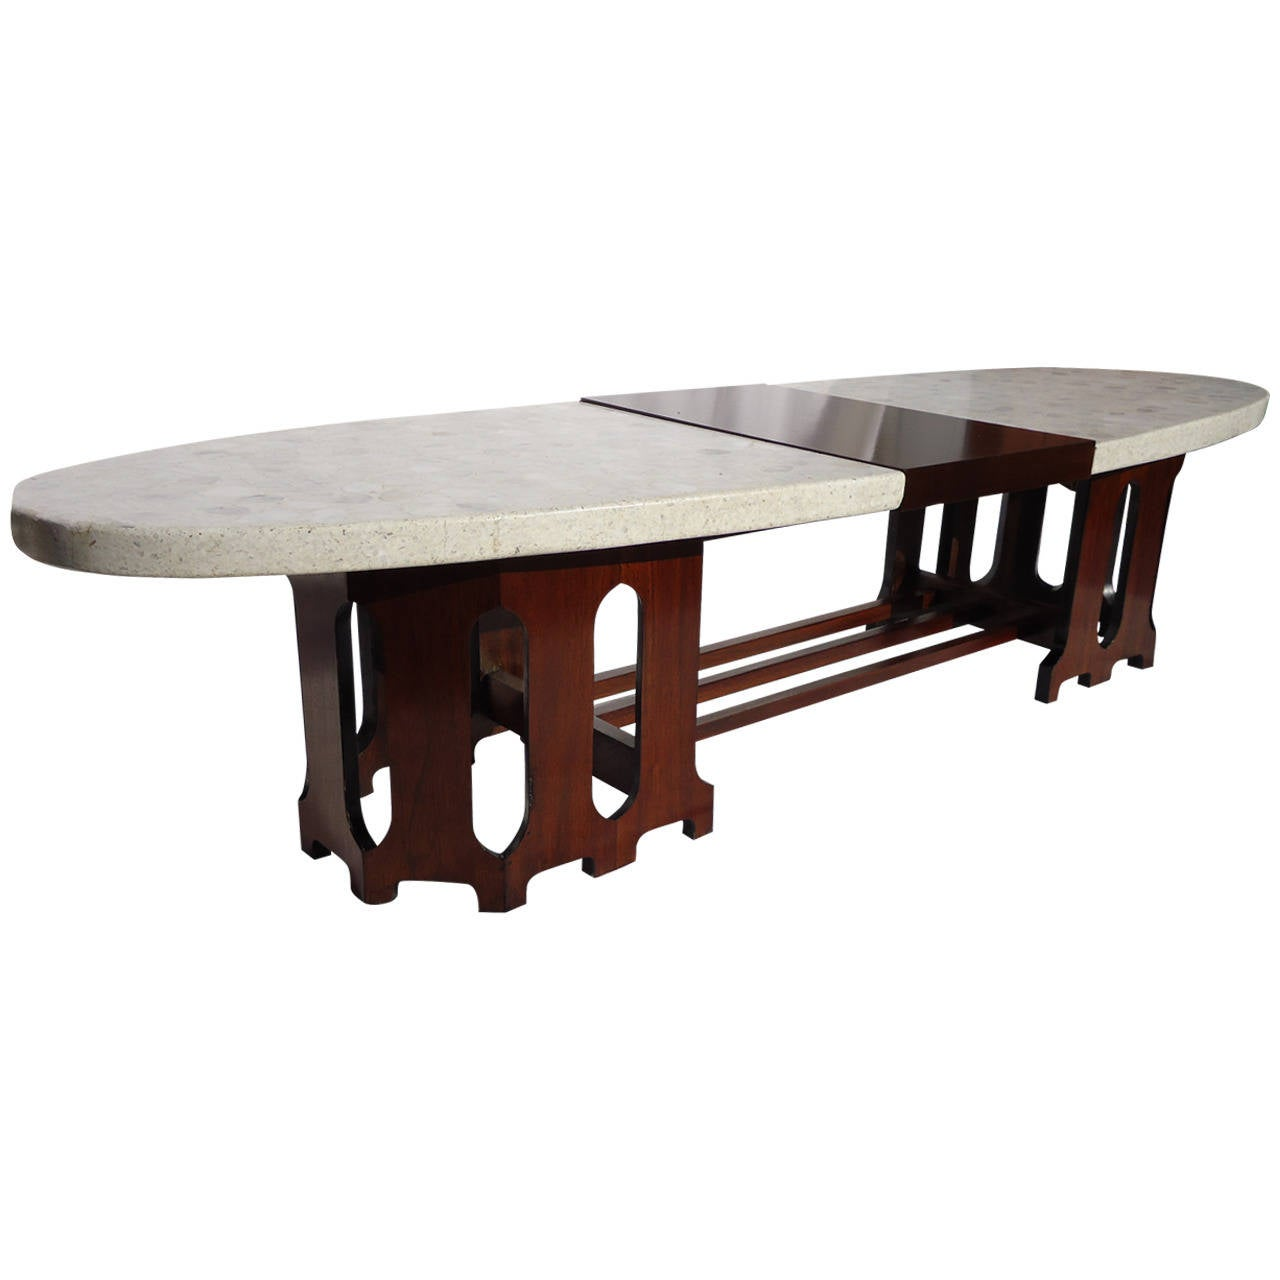 Marble Coffee Table For Sale Singapore: Harvey Probber Mid-Century Terrazzo Marble-Top Coffee